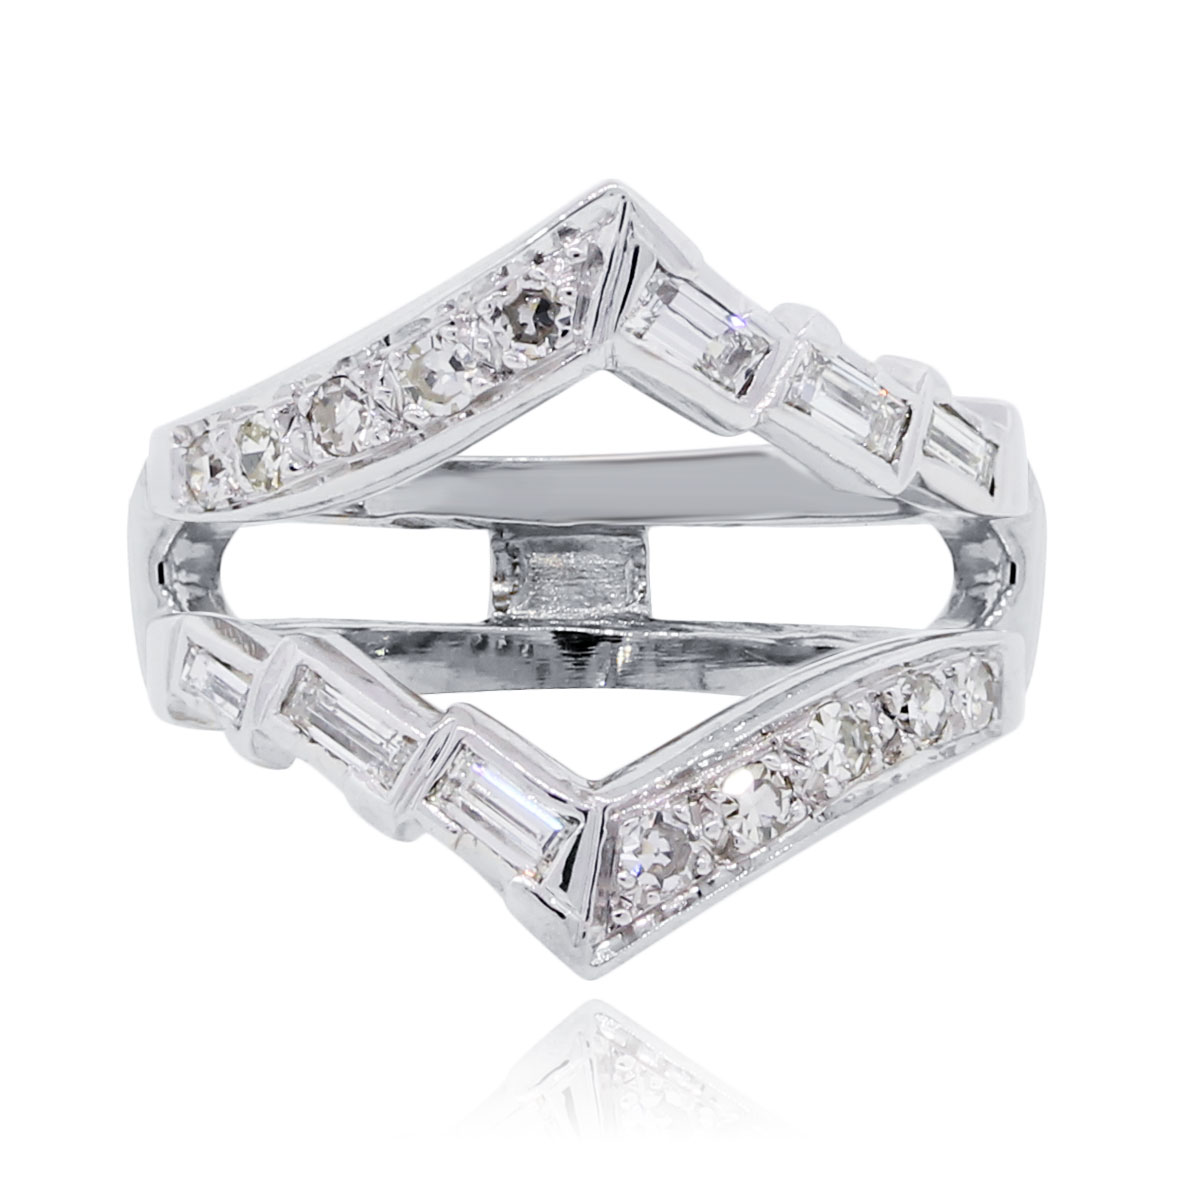 14k White Gold 0.45ctw Baguette Round Brilliant Diamond Ring Guard